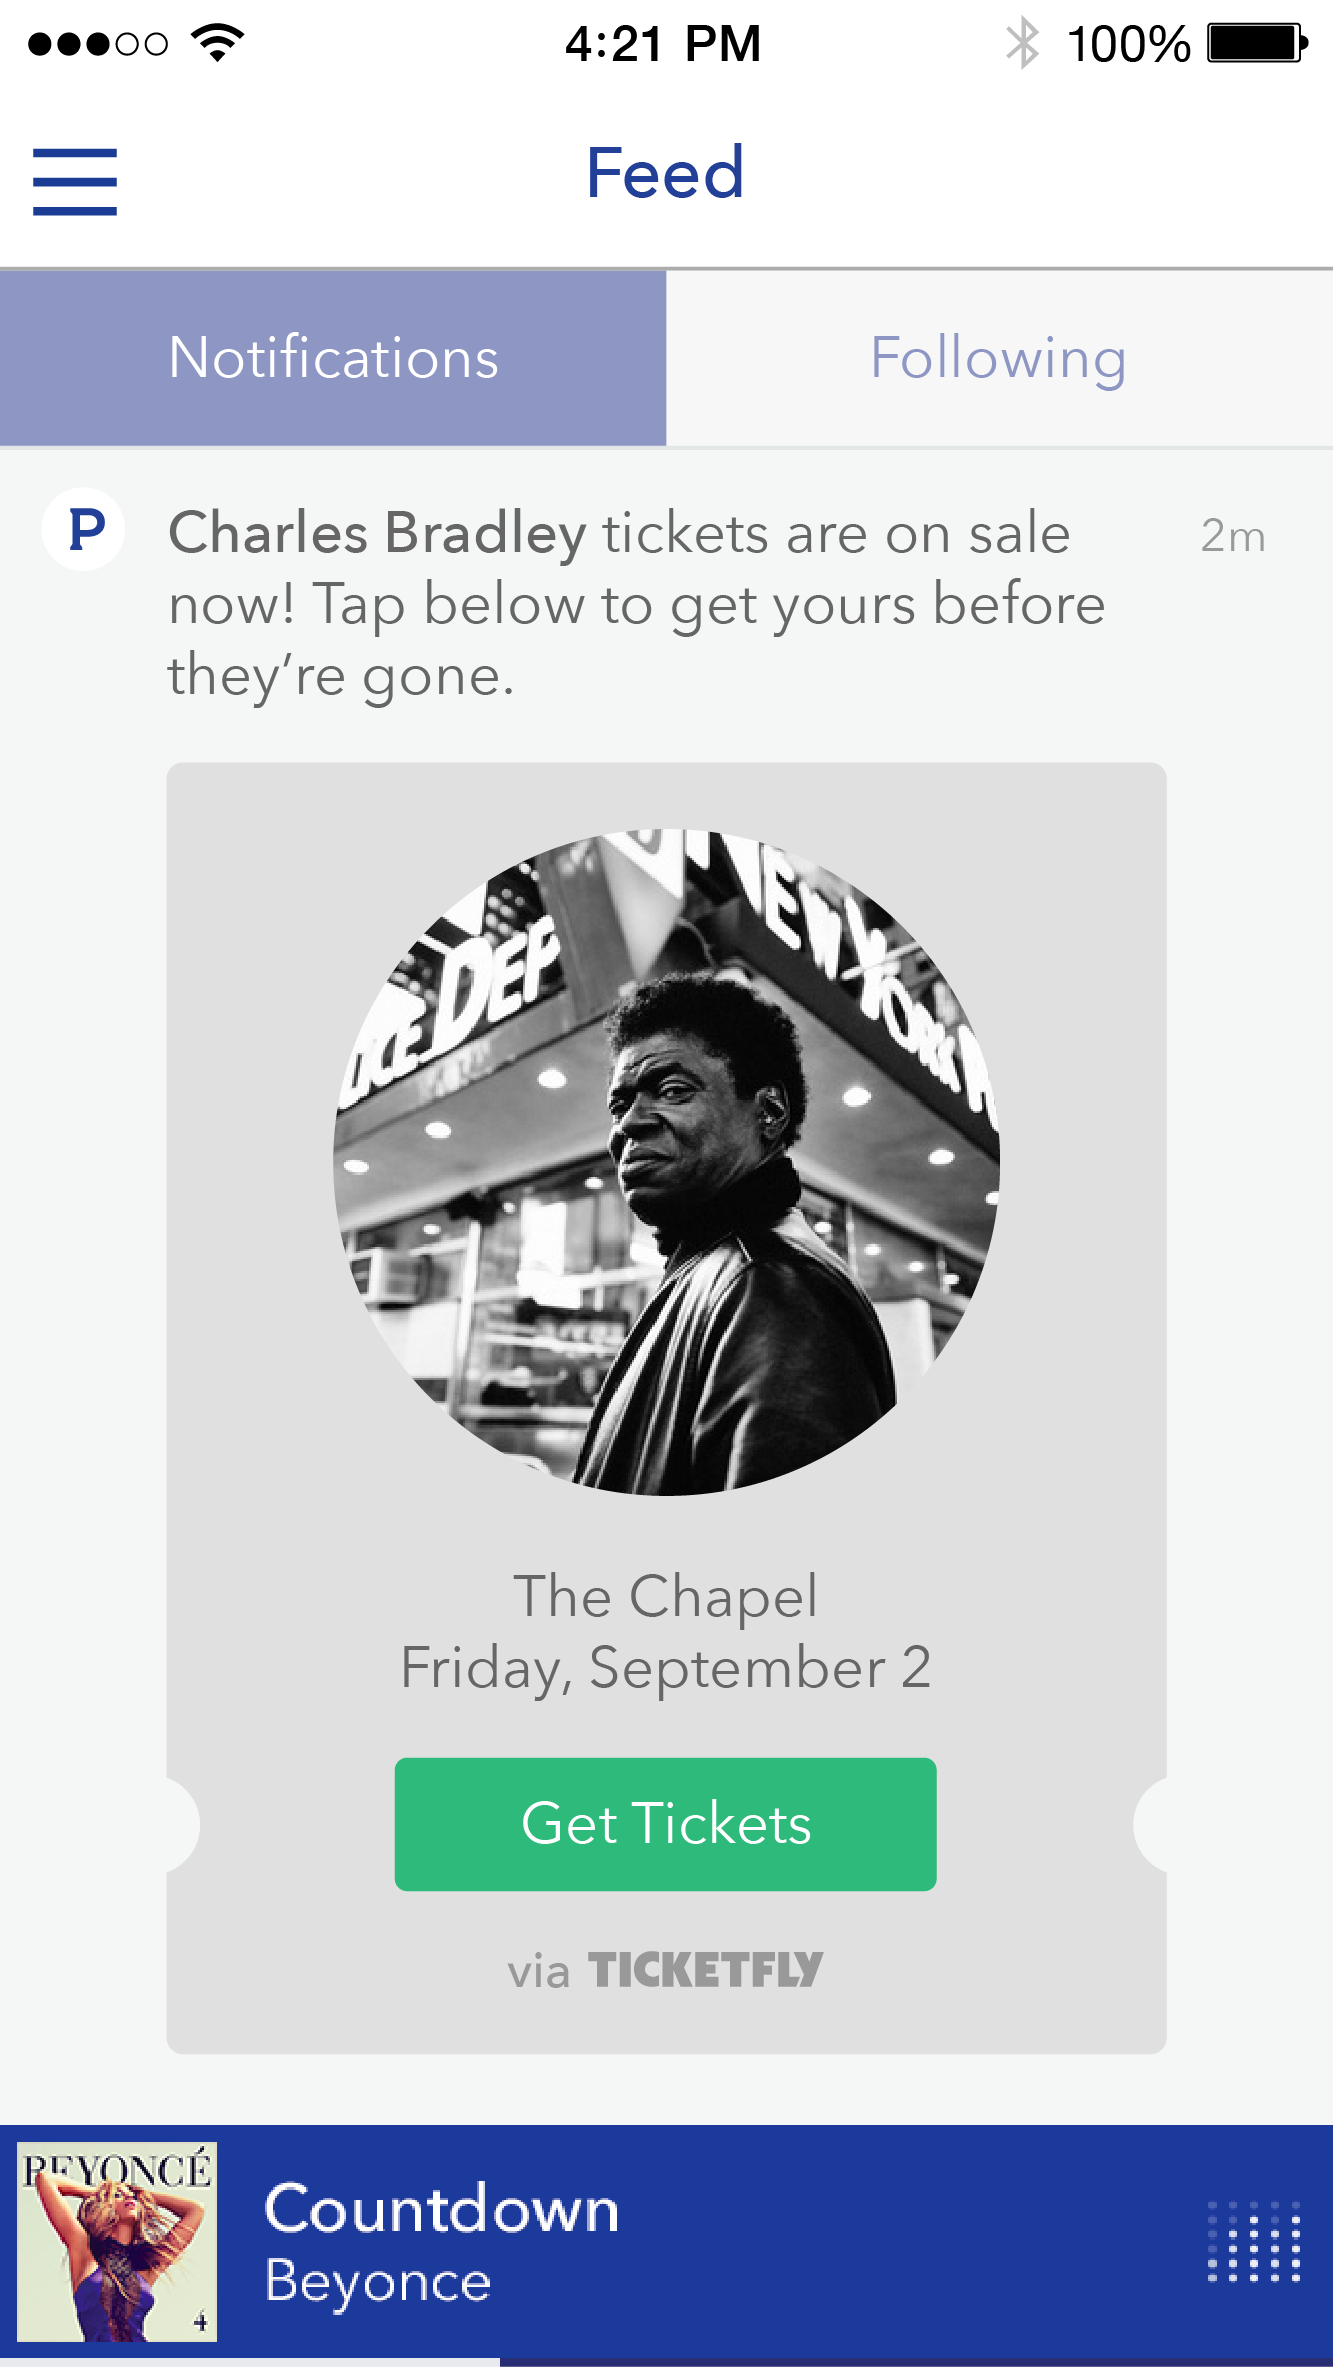 feed-notifcation-tf-buy-tickets.png